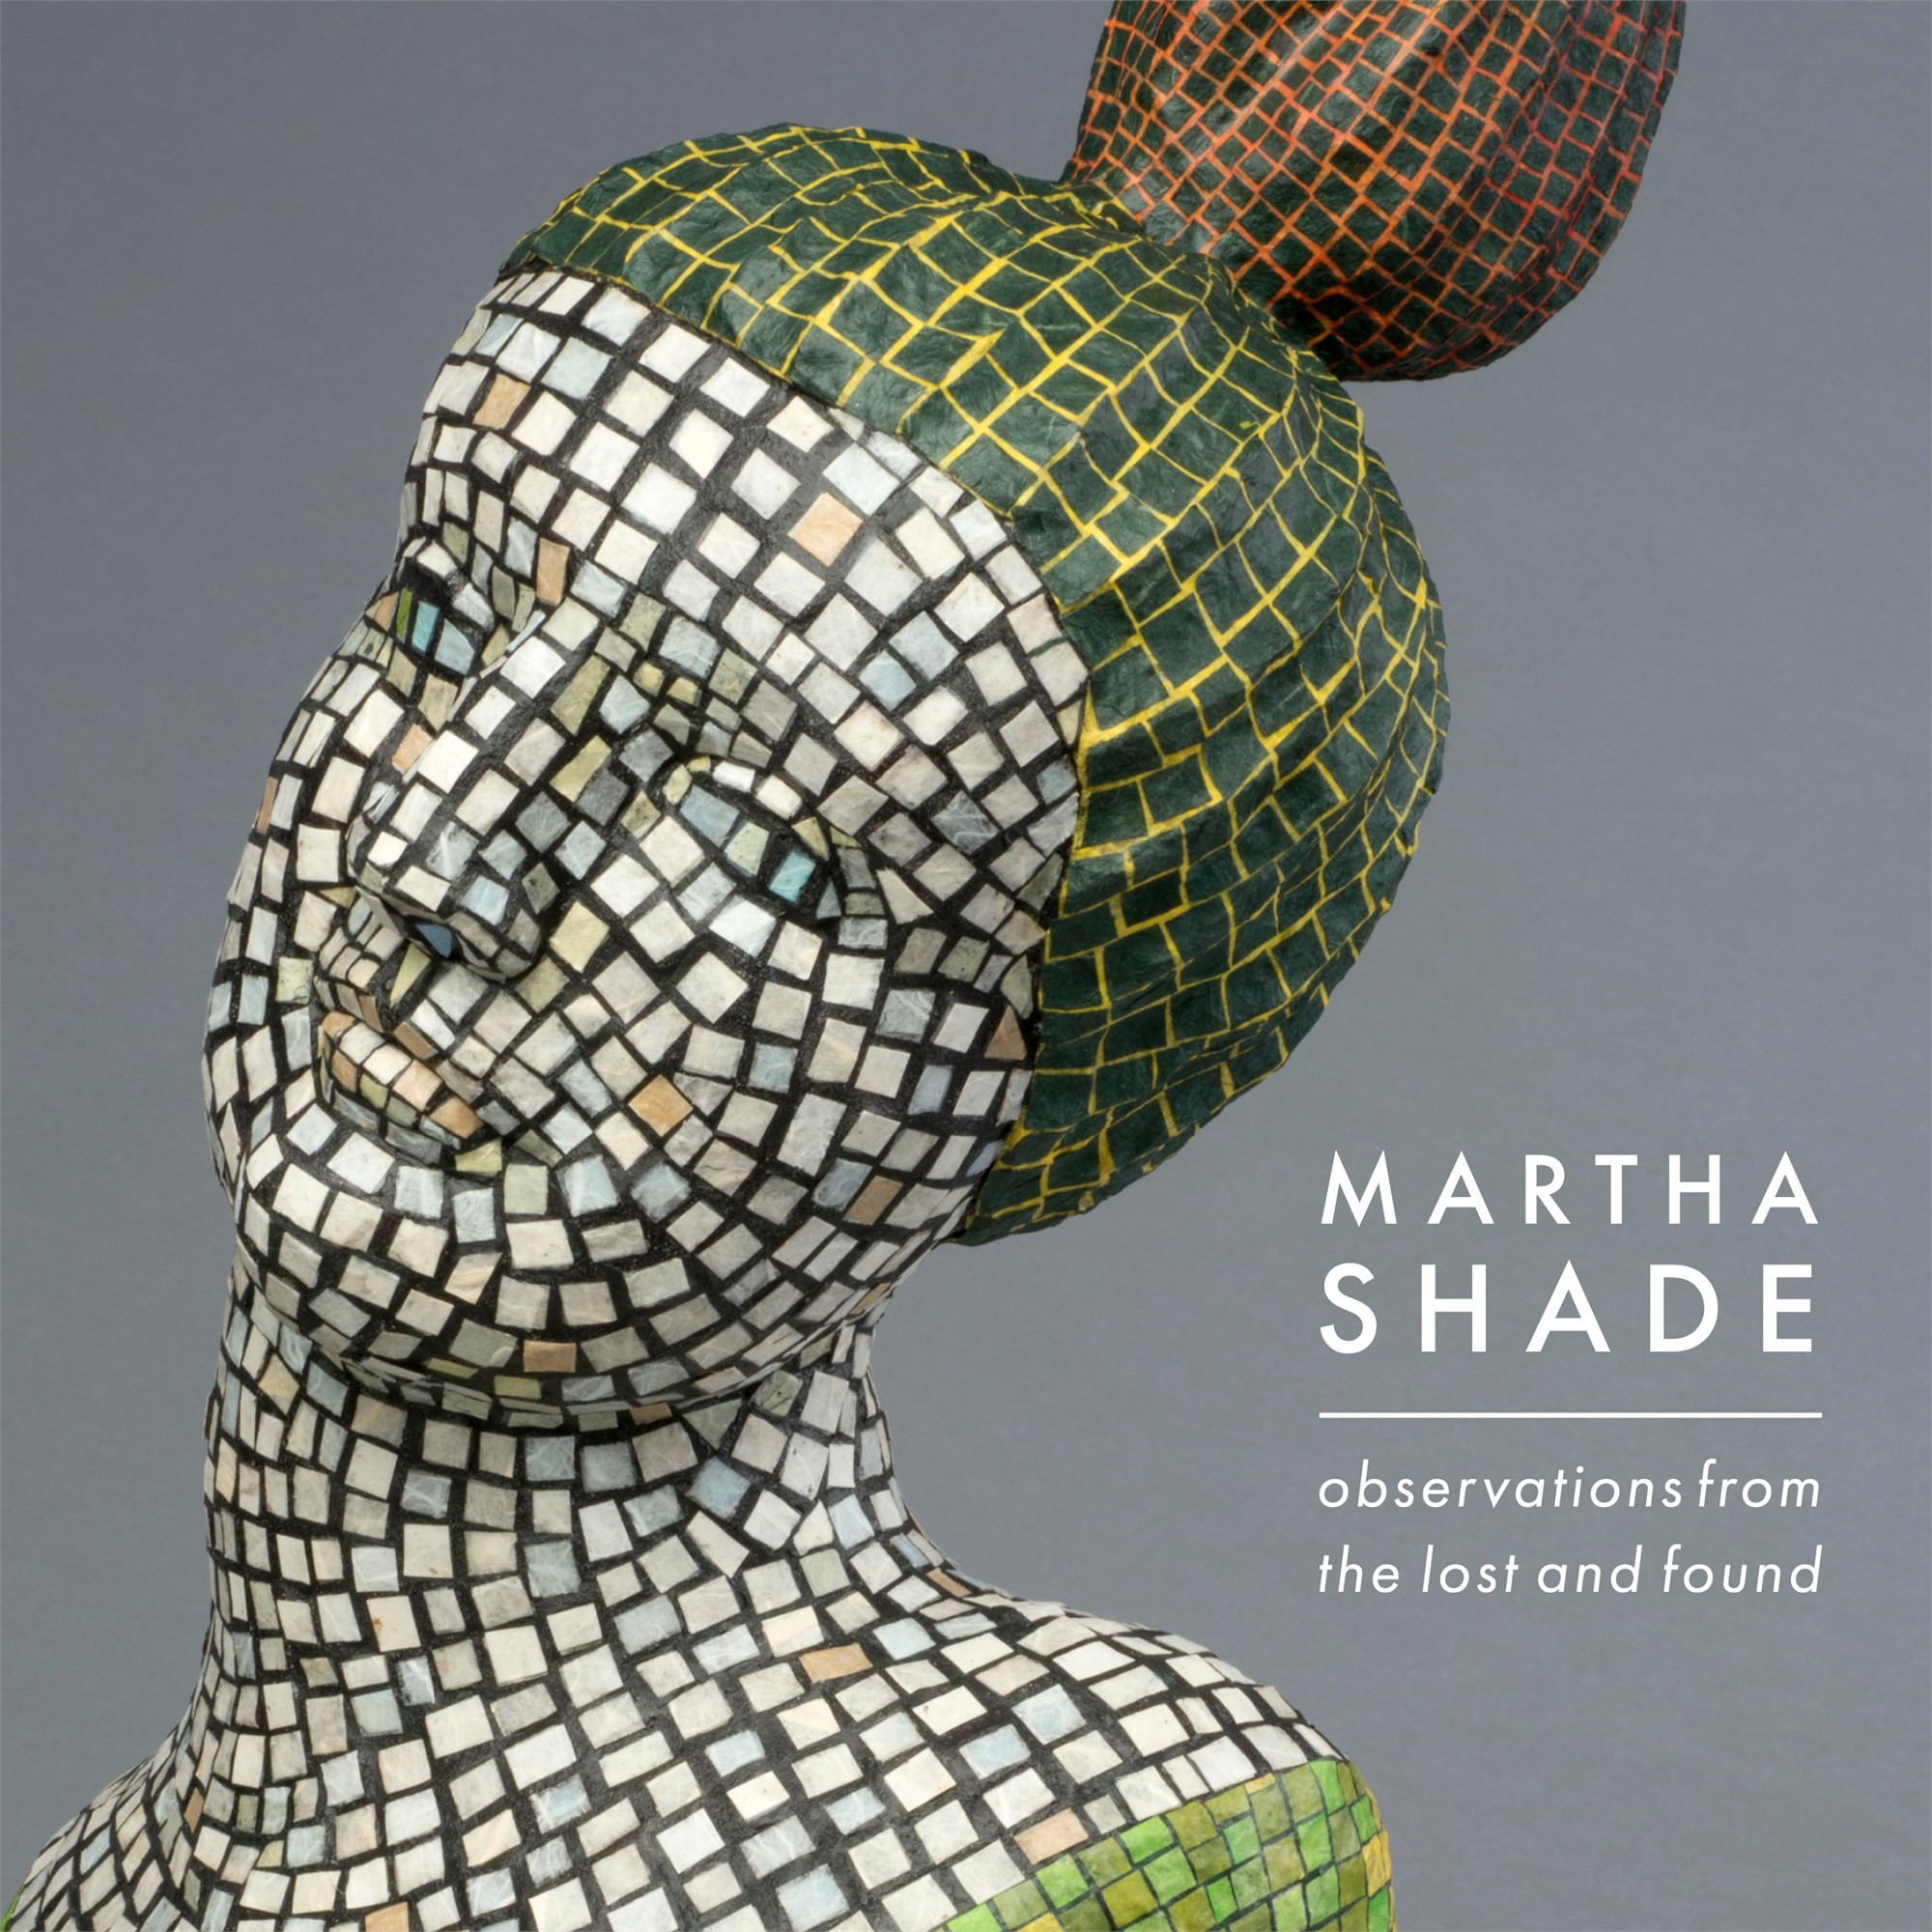 Observations from the Lost and Found | exhibition catalog by Martha Shade